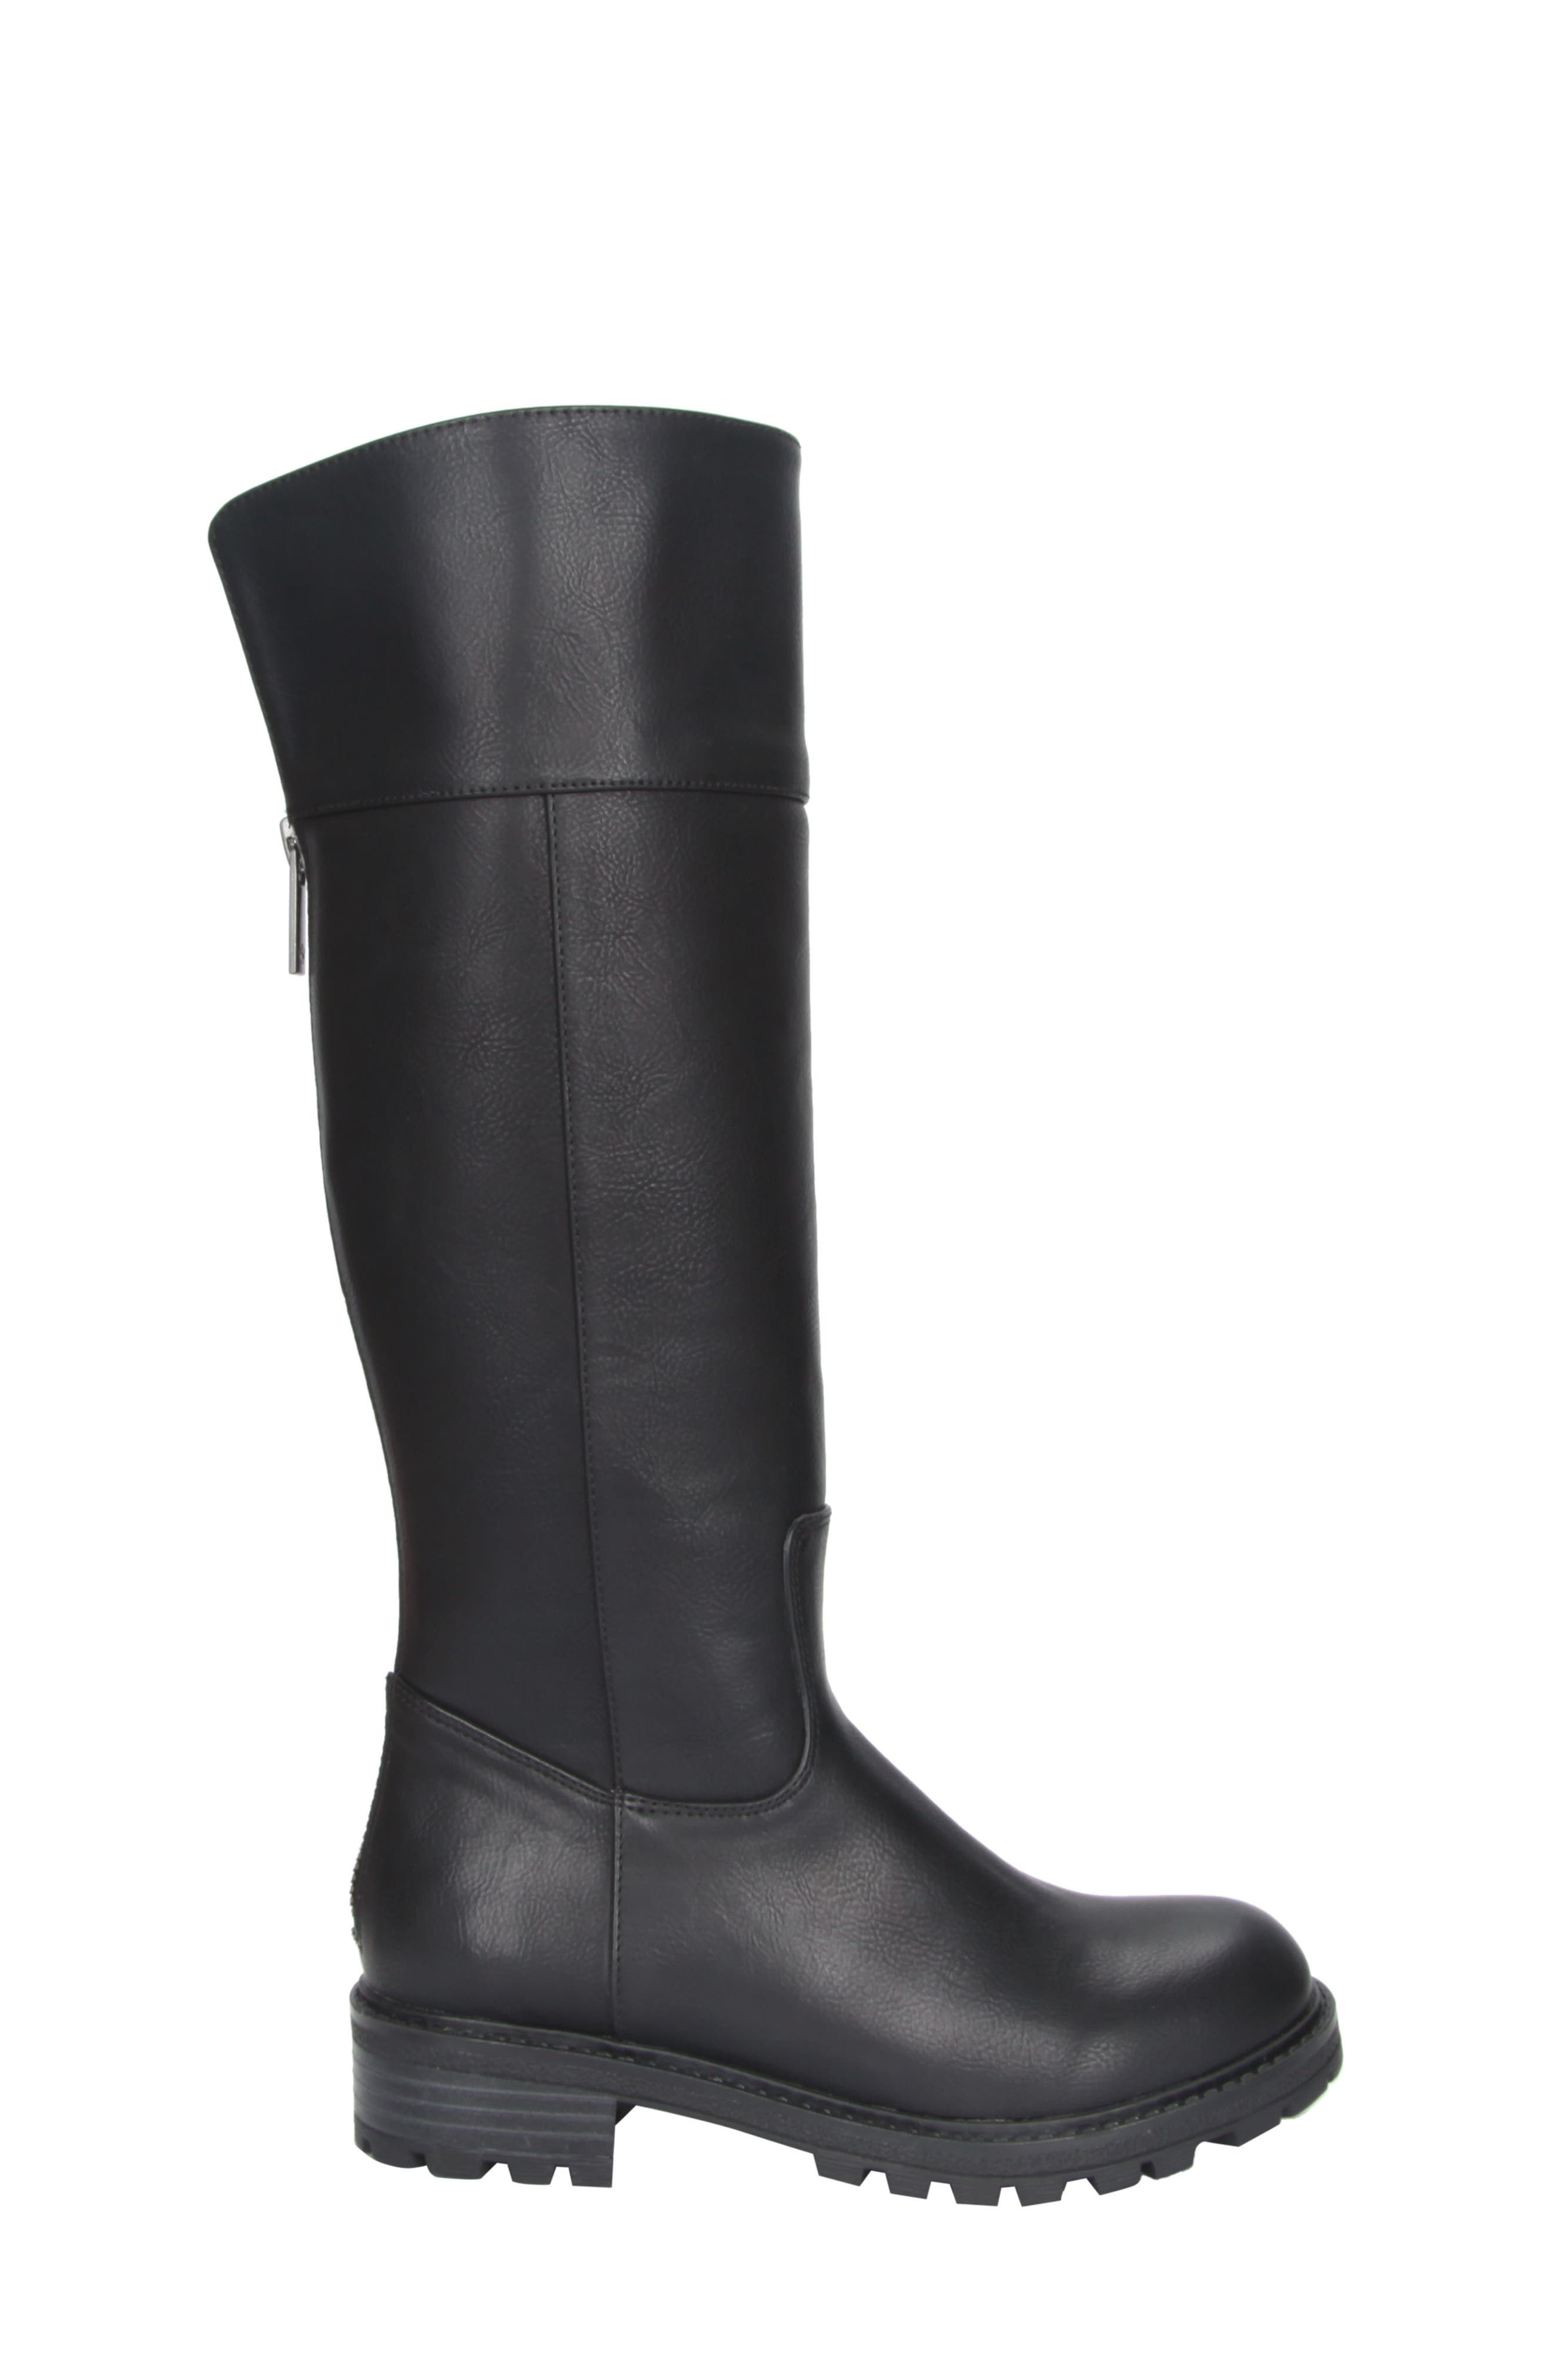 Nixie Tall Lugged Boot,                             Alternate thumbnail 3, color,                             Black Tumbled Leather